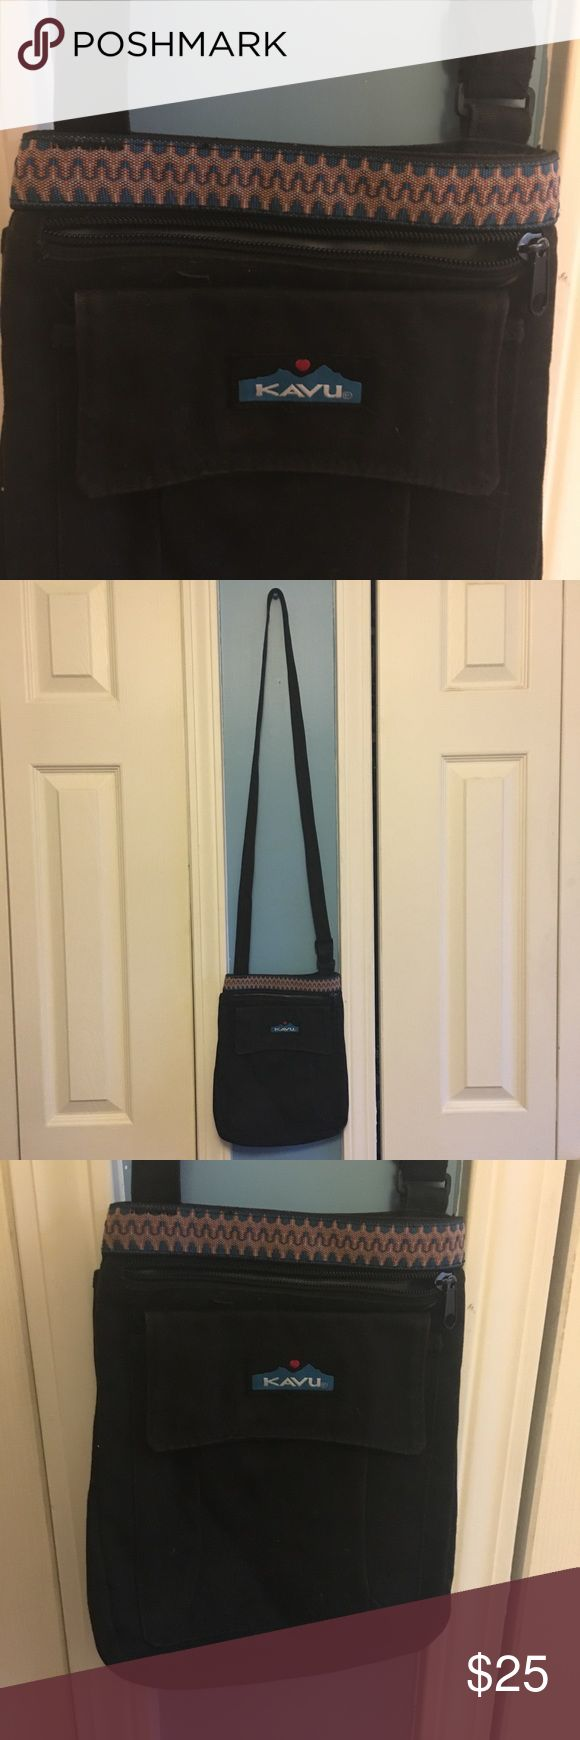 KAVU Keeper Bag Black Crossbody Bag with blue, orange and white design. This bag is a great everyday bag, and is also really good for outdoor activities. This goes with pretty much any outfit, and is really cute! KAVU Bags Crossbody Bags